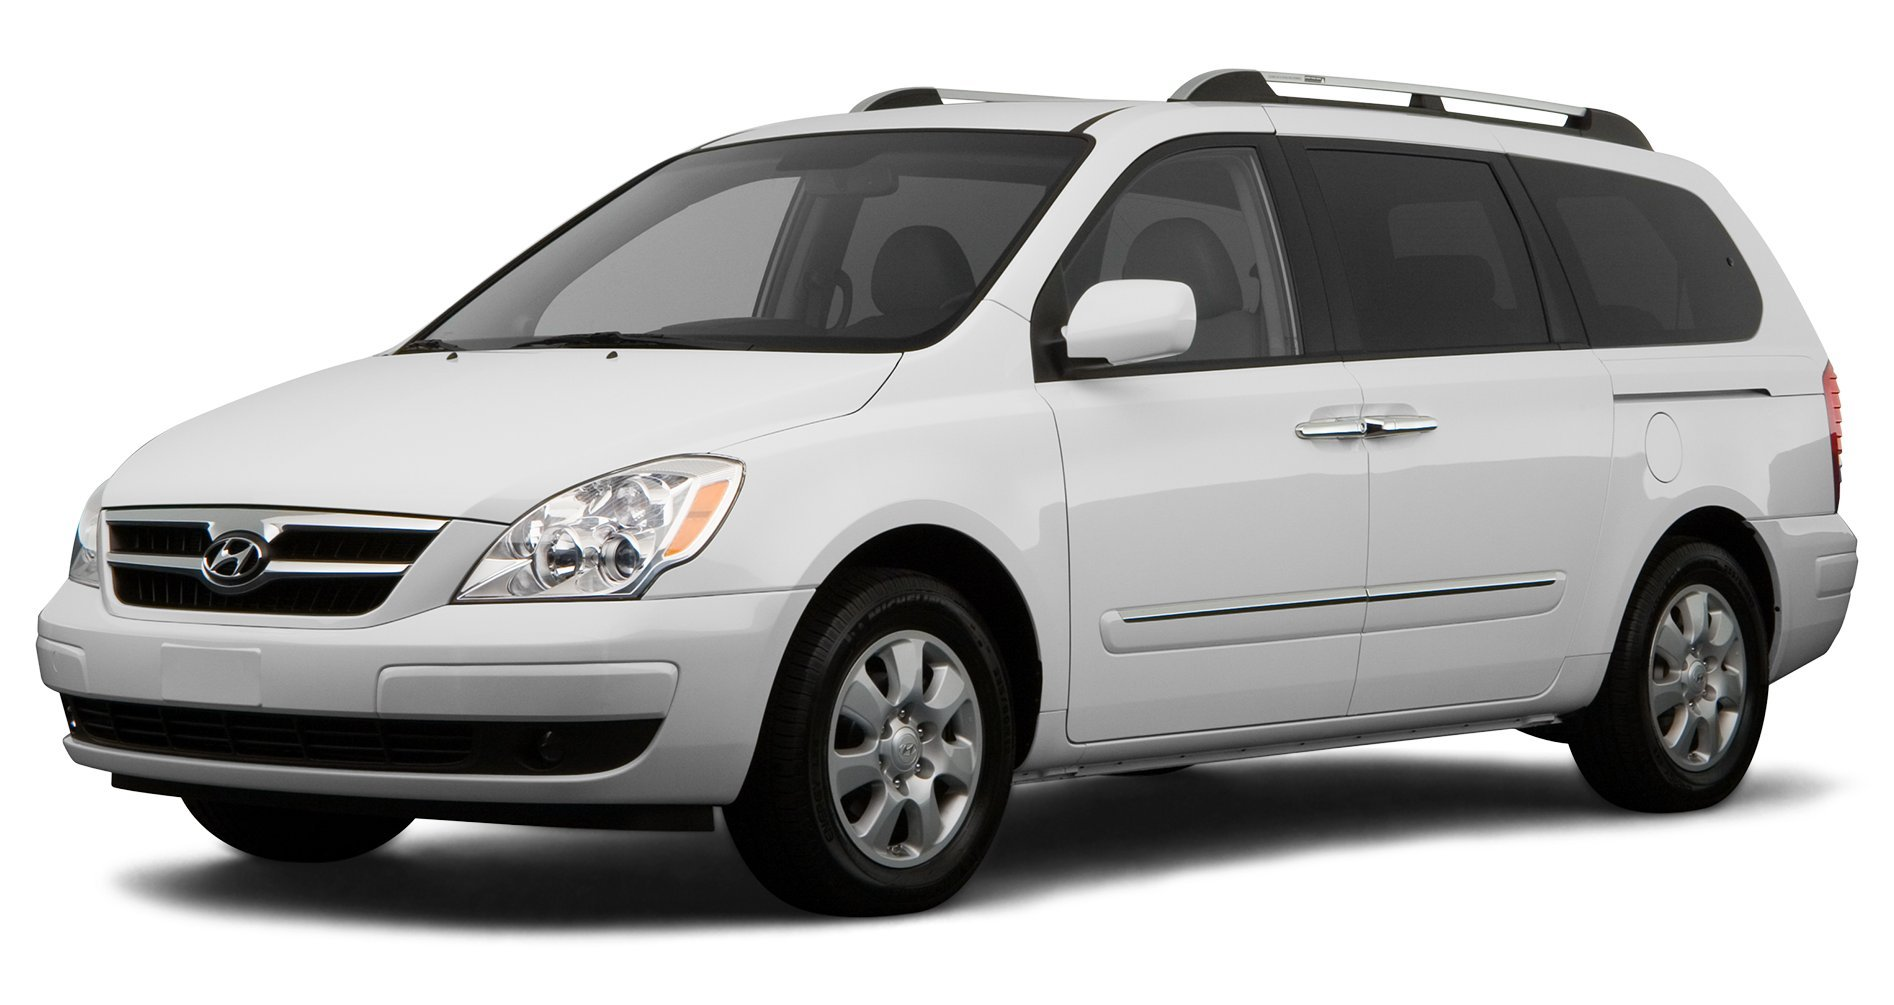 2007 buick terraza reviews images and specs. Black Bedroom Furniture Sets. Home Design Ideas